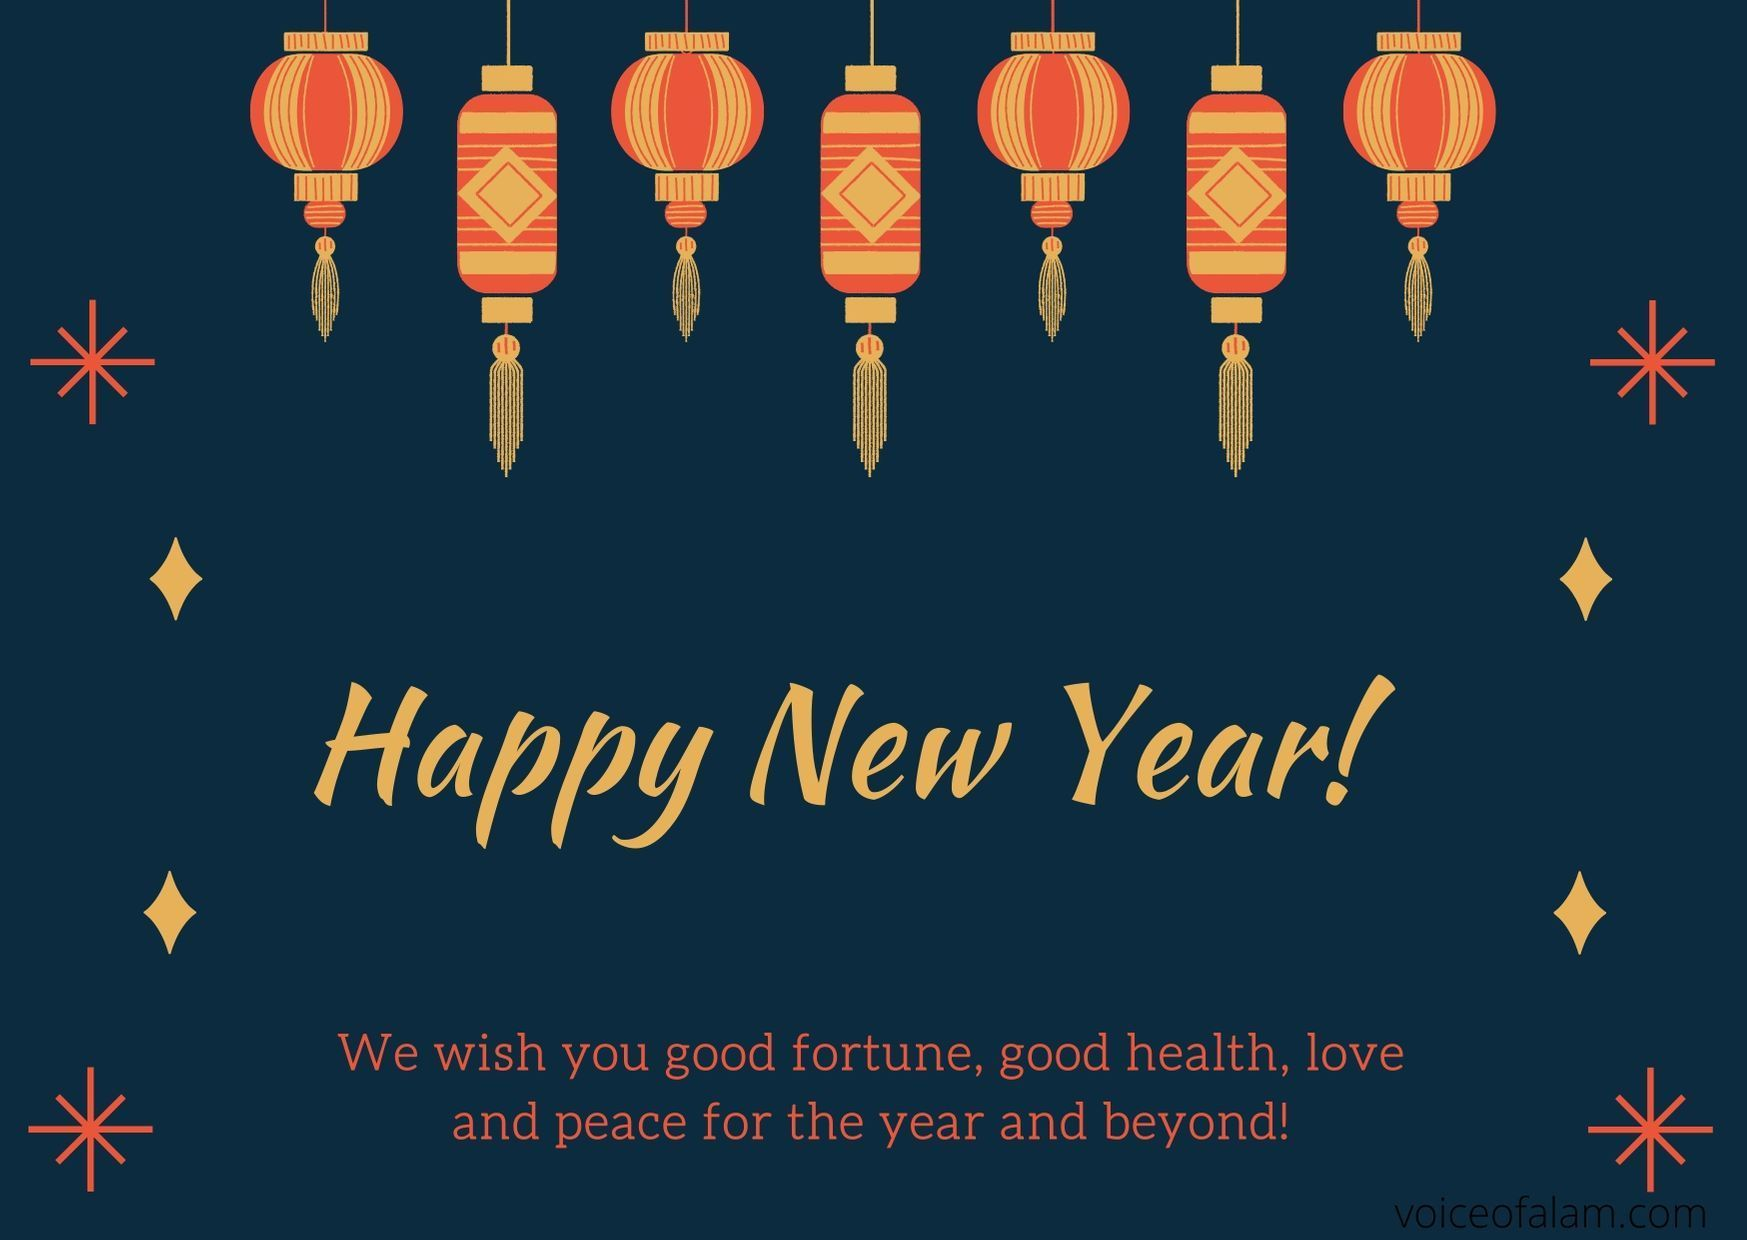 50+ Happy New Year Wishing Image to Download and Share